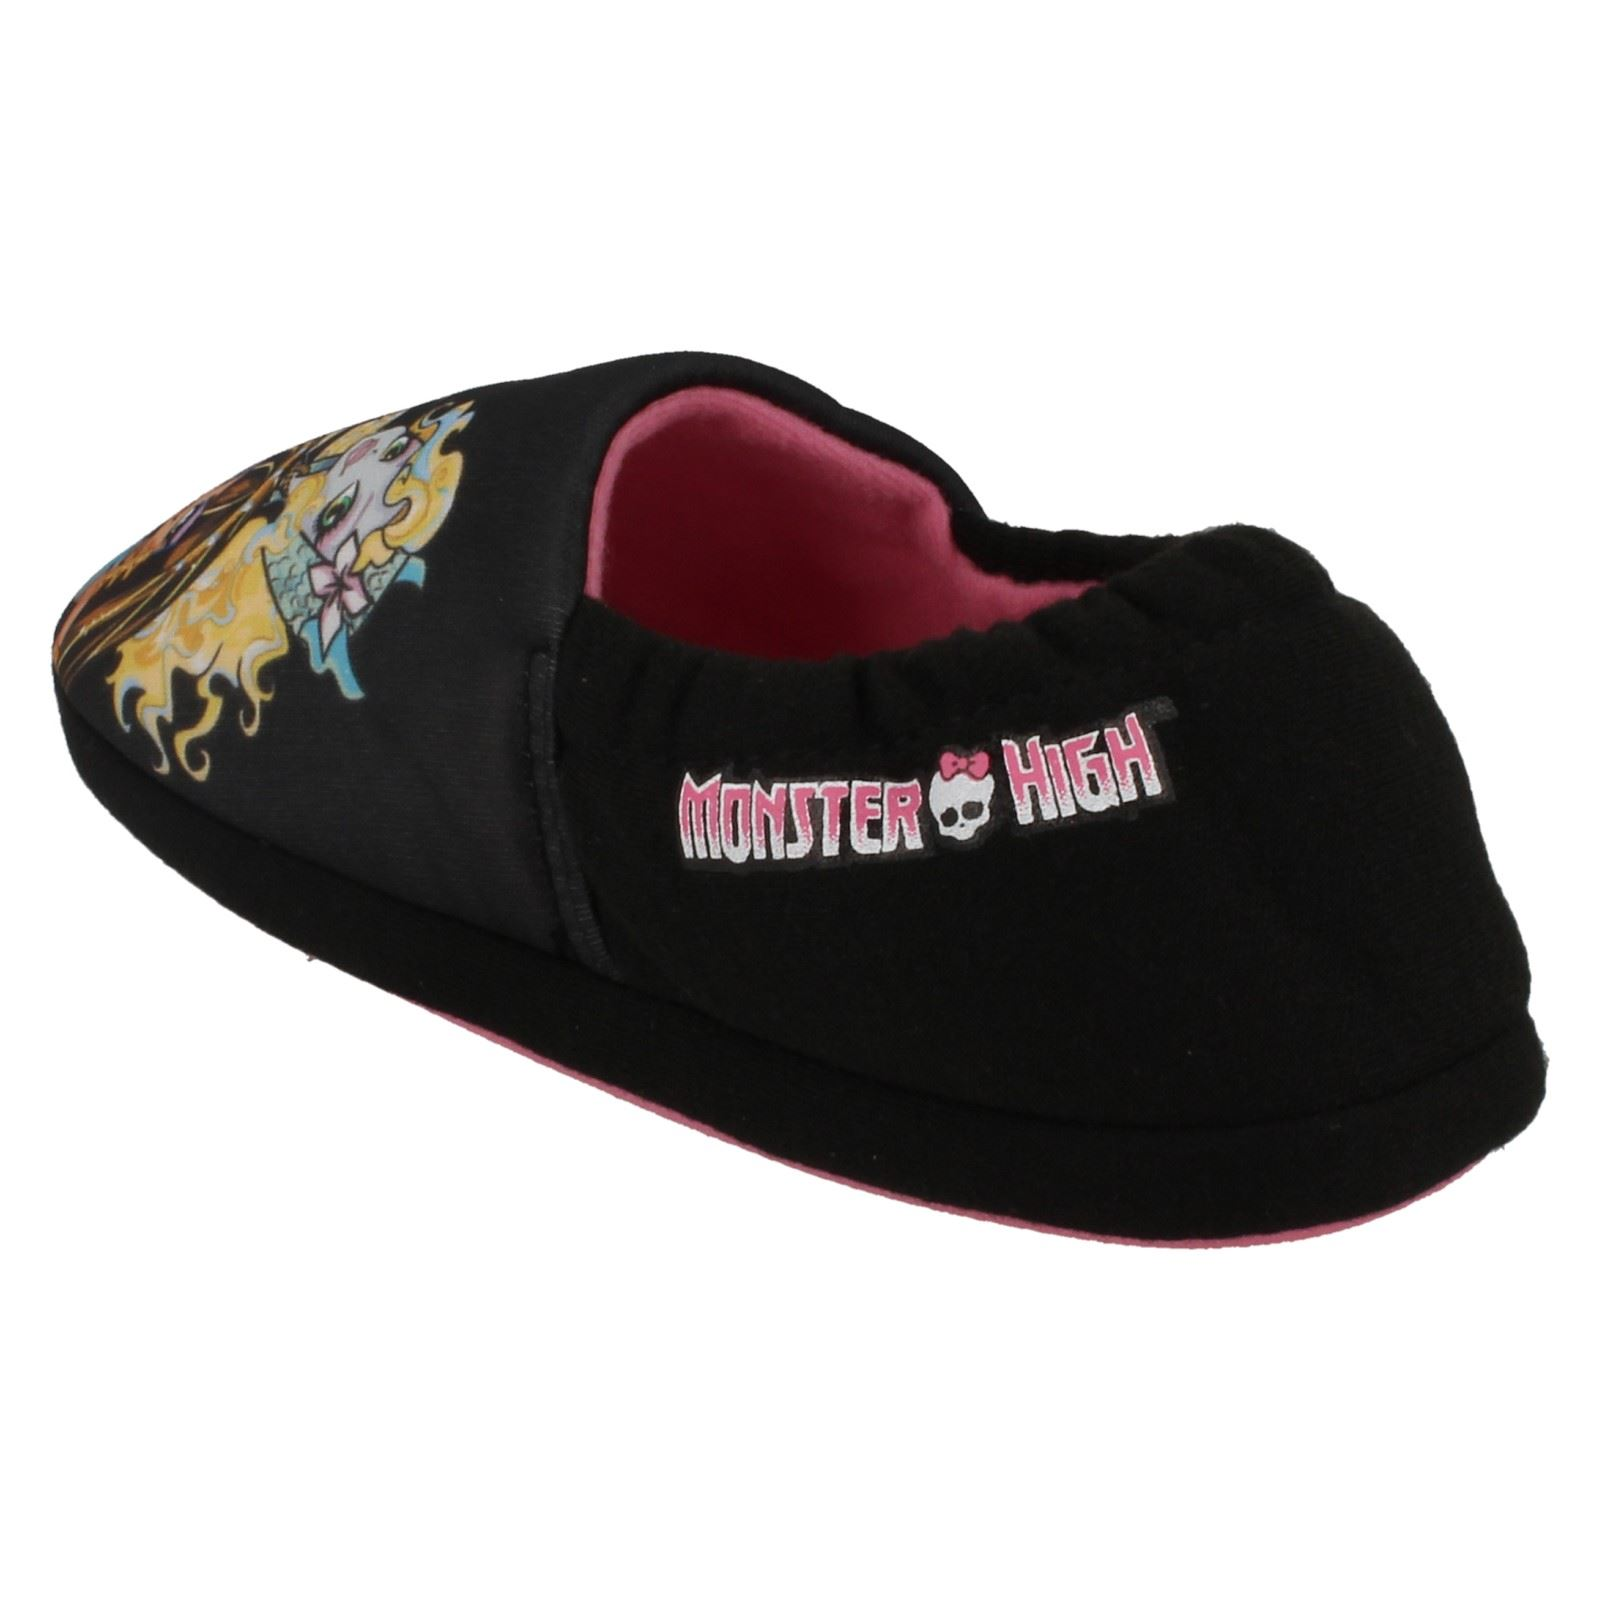 Chicas MONSTER HIGH Zapatillas Casual Slip On